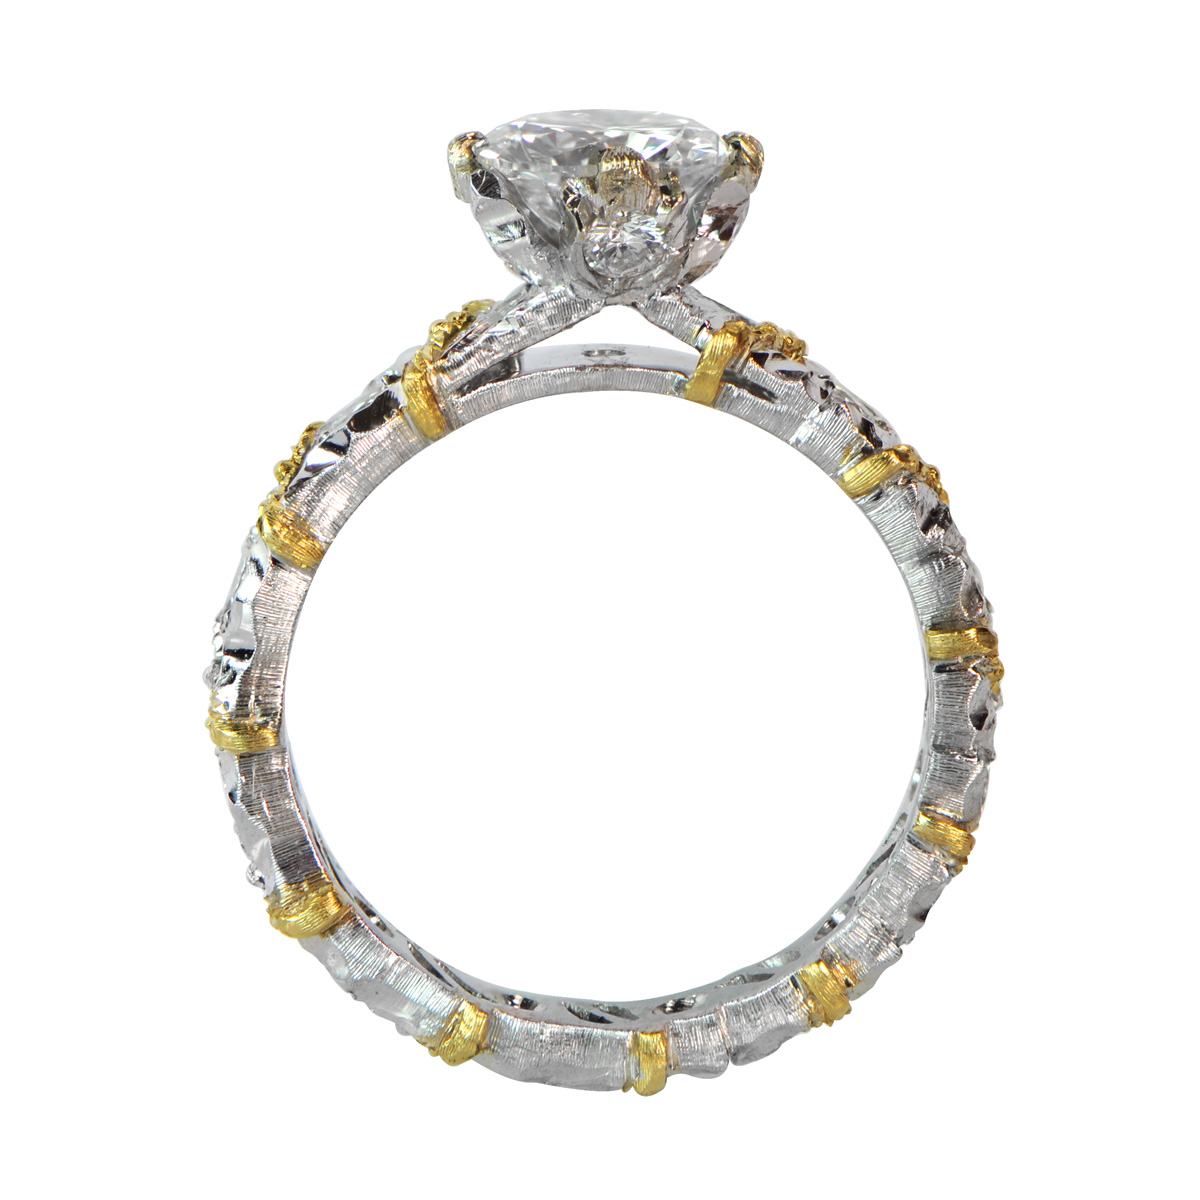 Rare Buccellati engagement ring with diamond and gold detailing